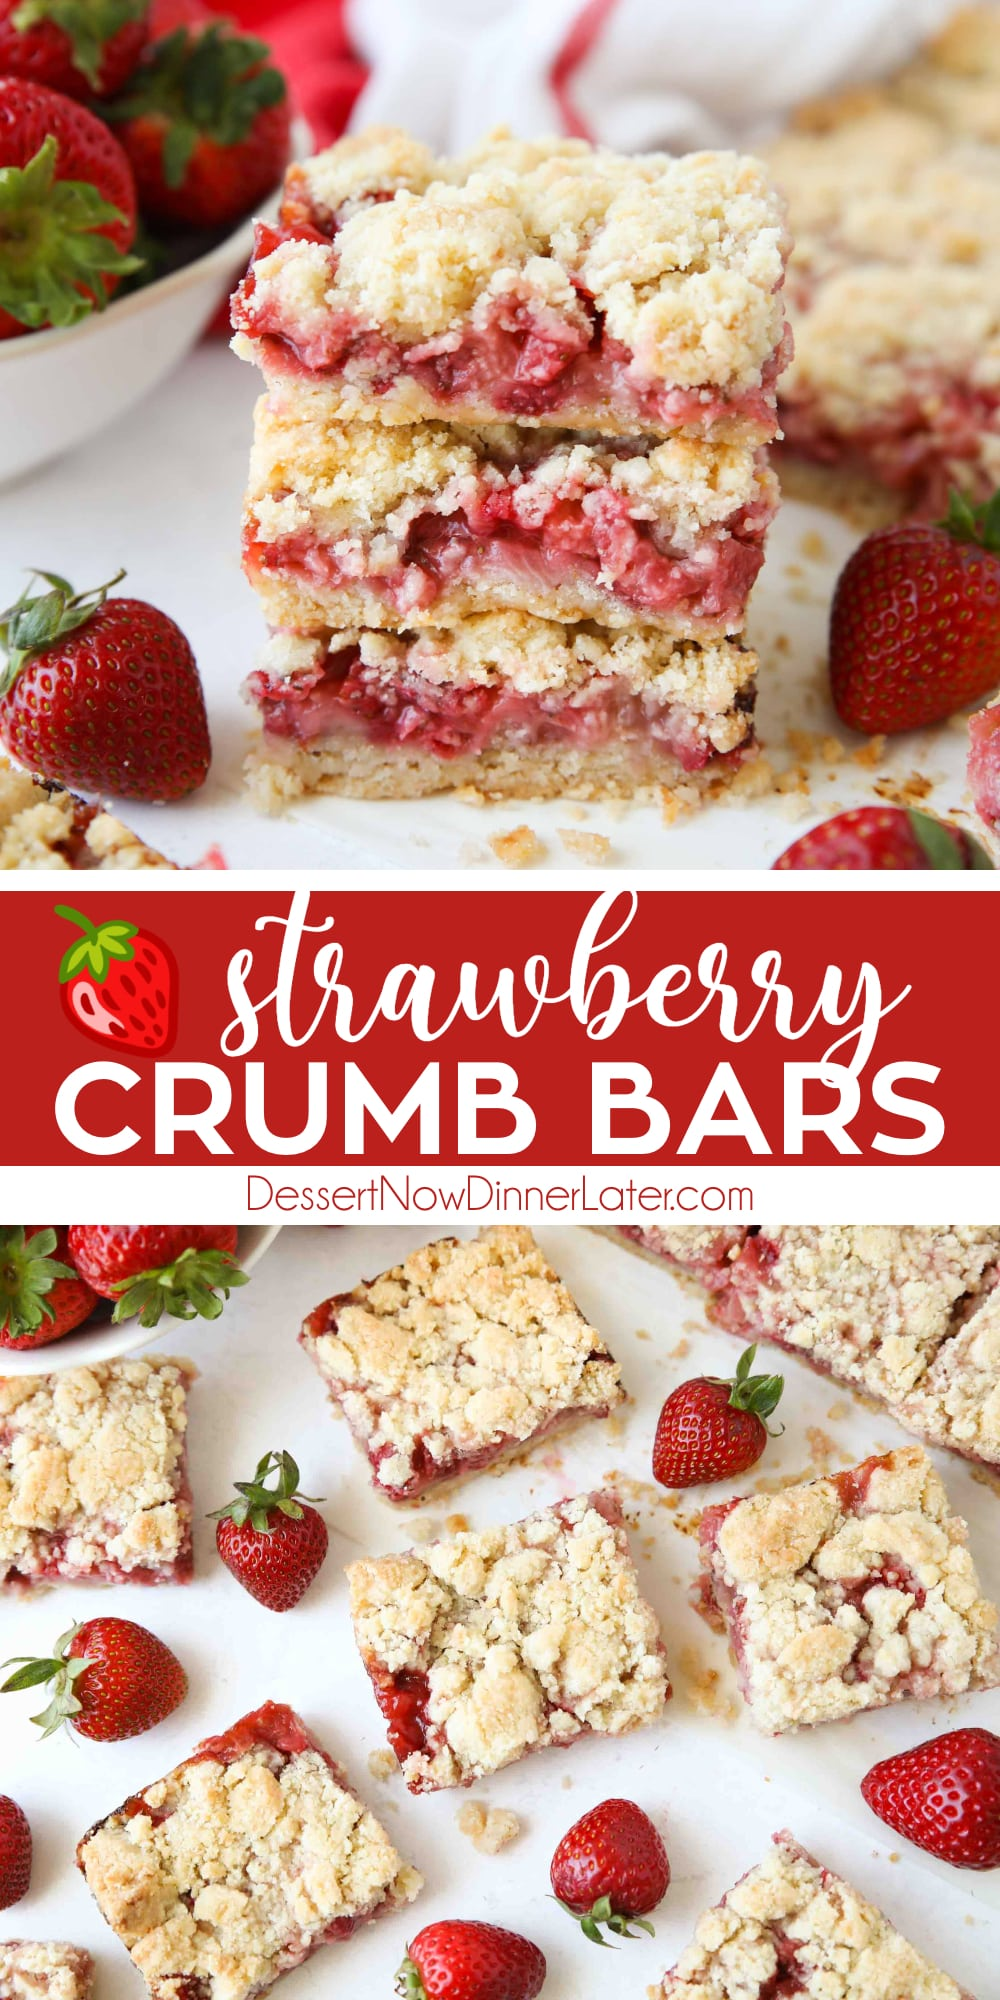 Pinterest collage image for Strawberry Crumb Bars with two images and text in the center.